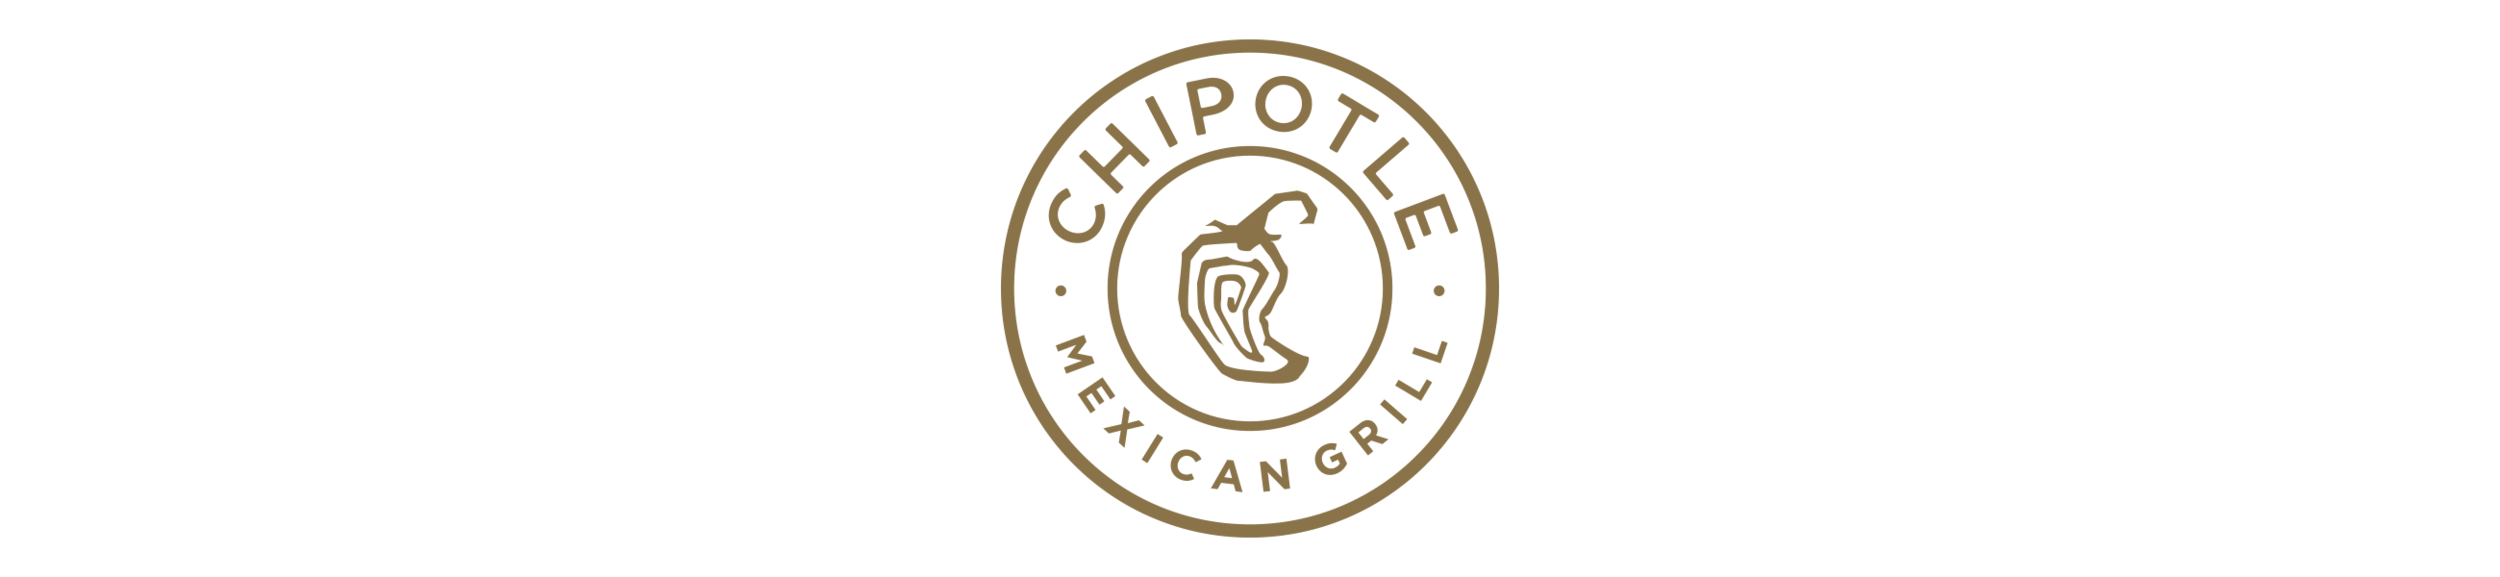 Chipotle_Logo_Gold.png